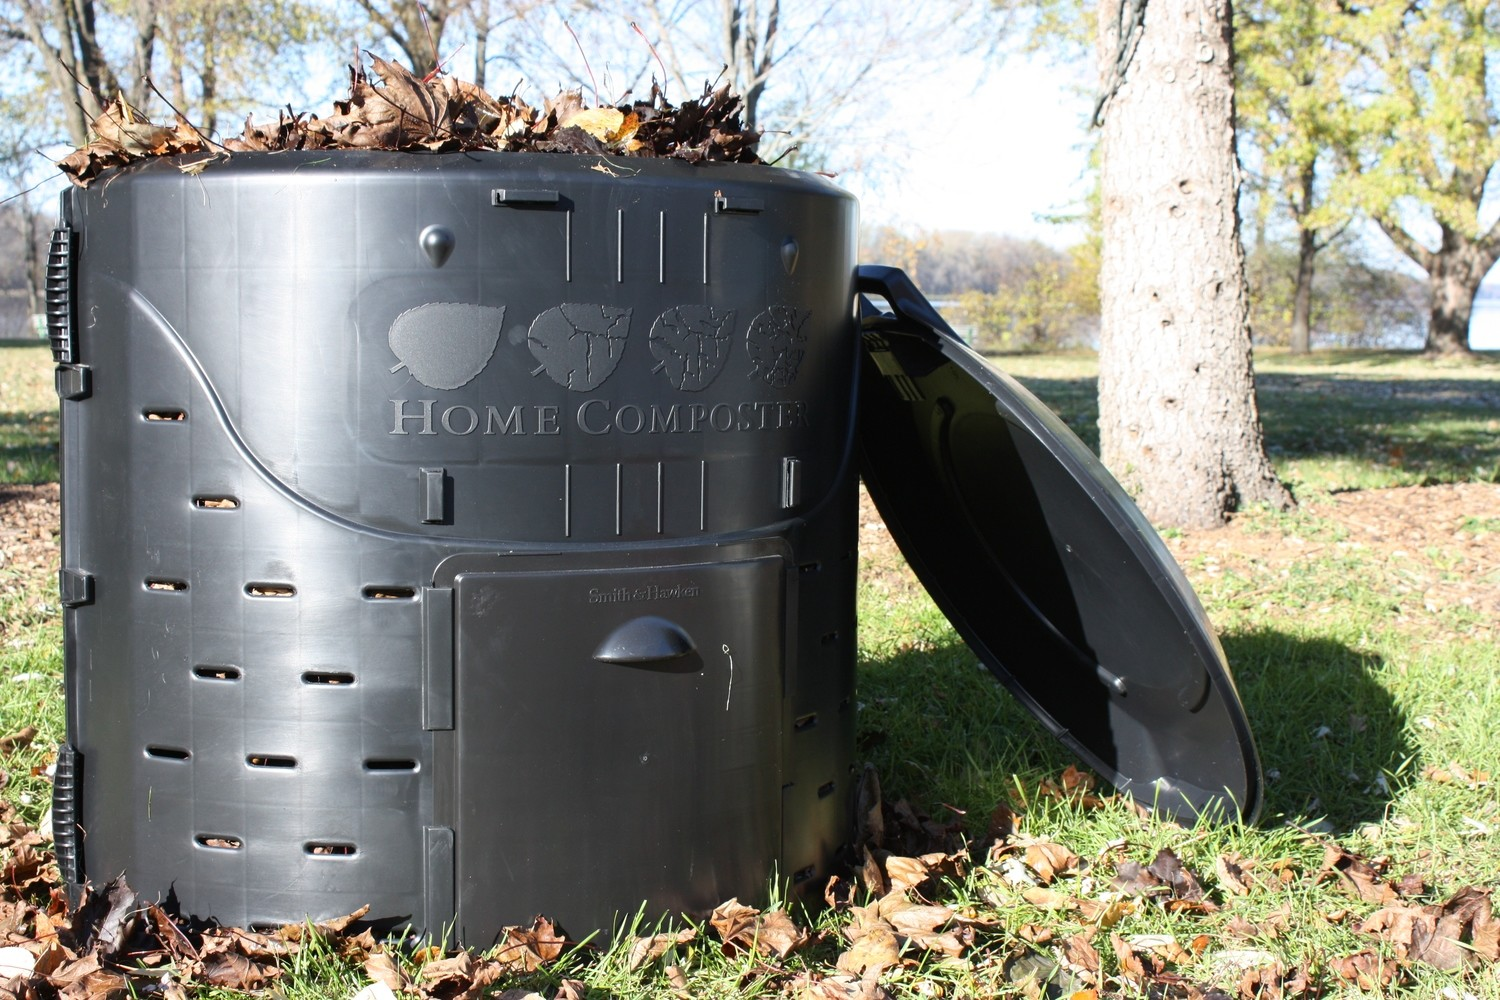 Ramsey County - Maplewood Home Composter